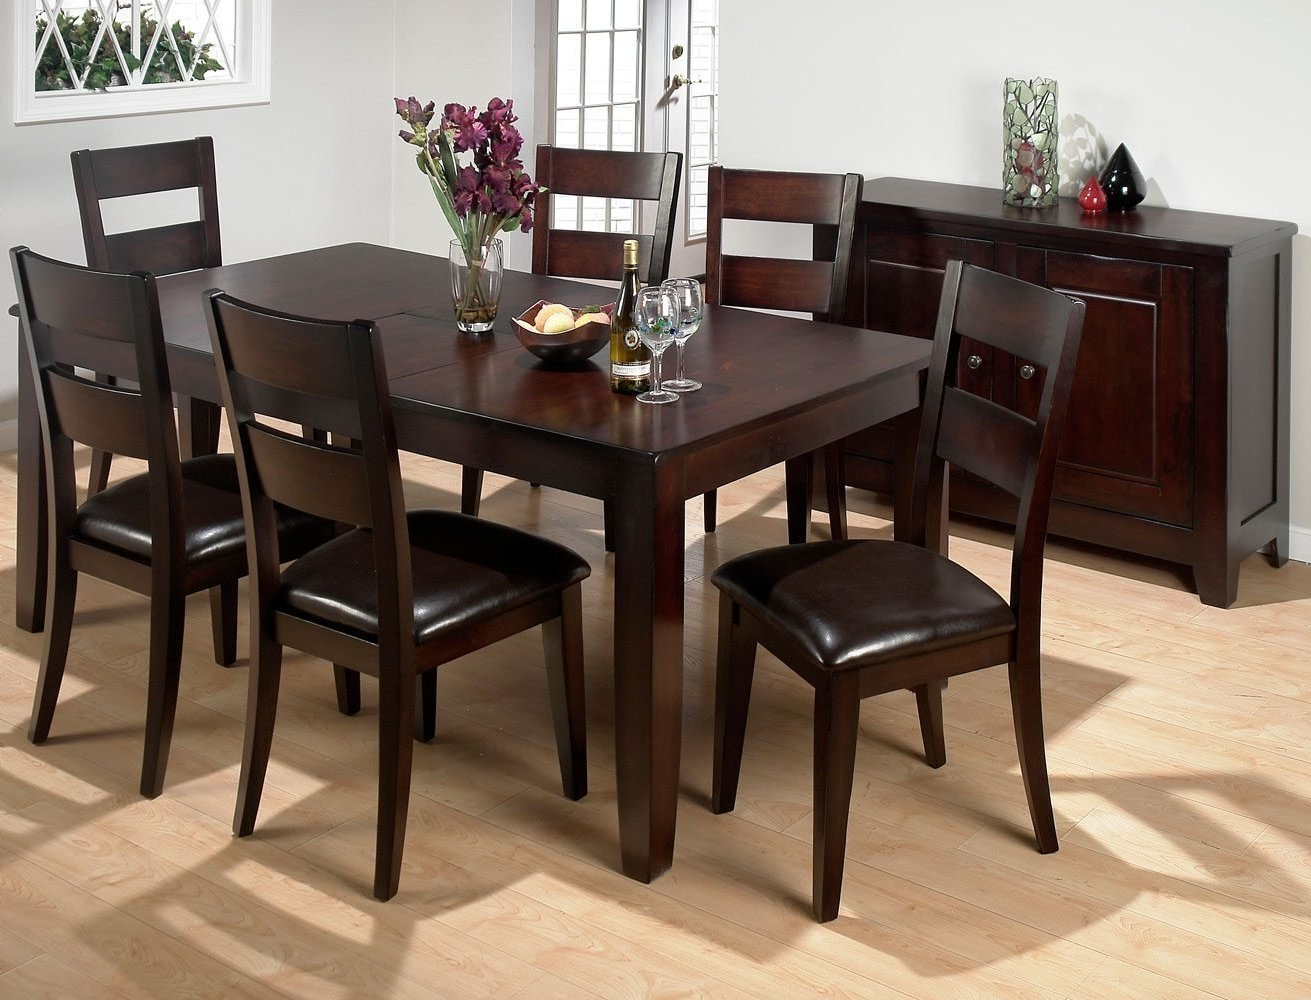 target kitchen tables gallery of target kitchen chairs kmart table and chairs target dining